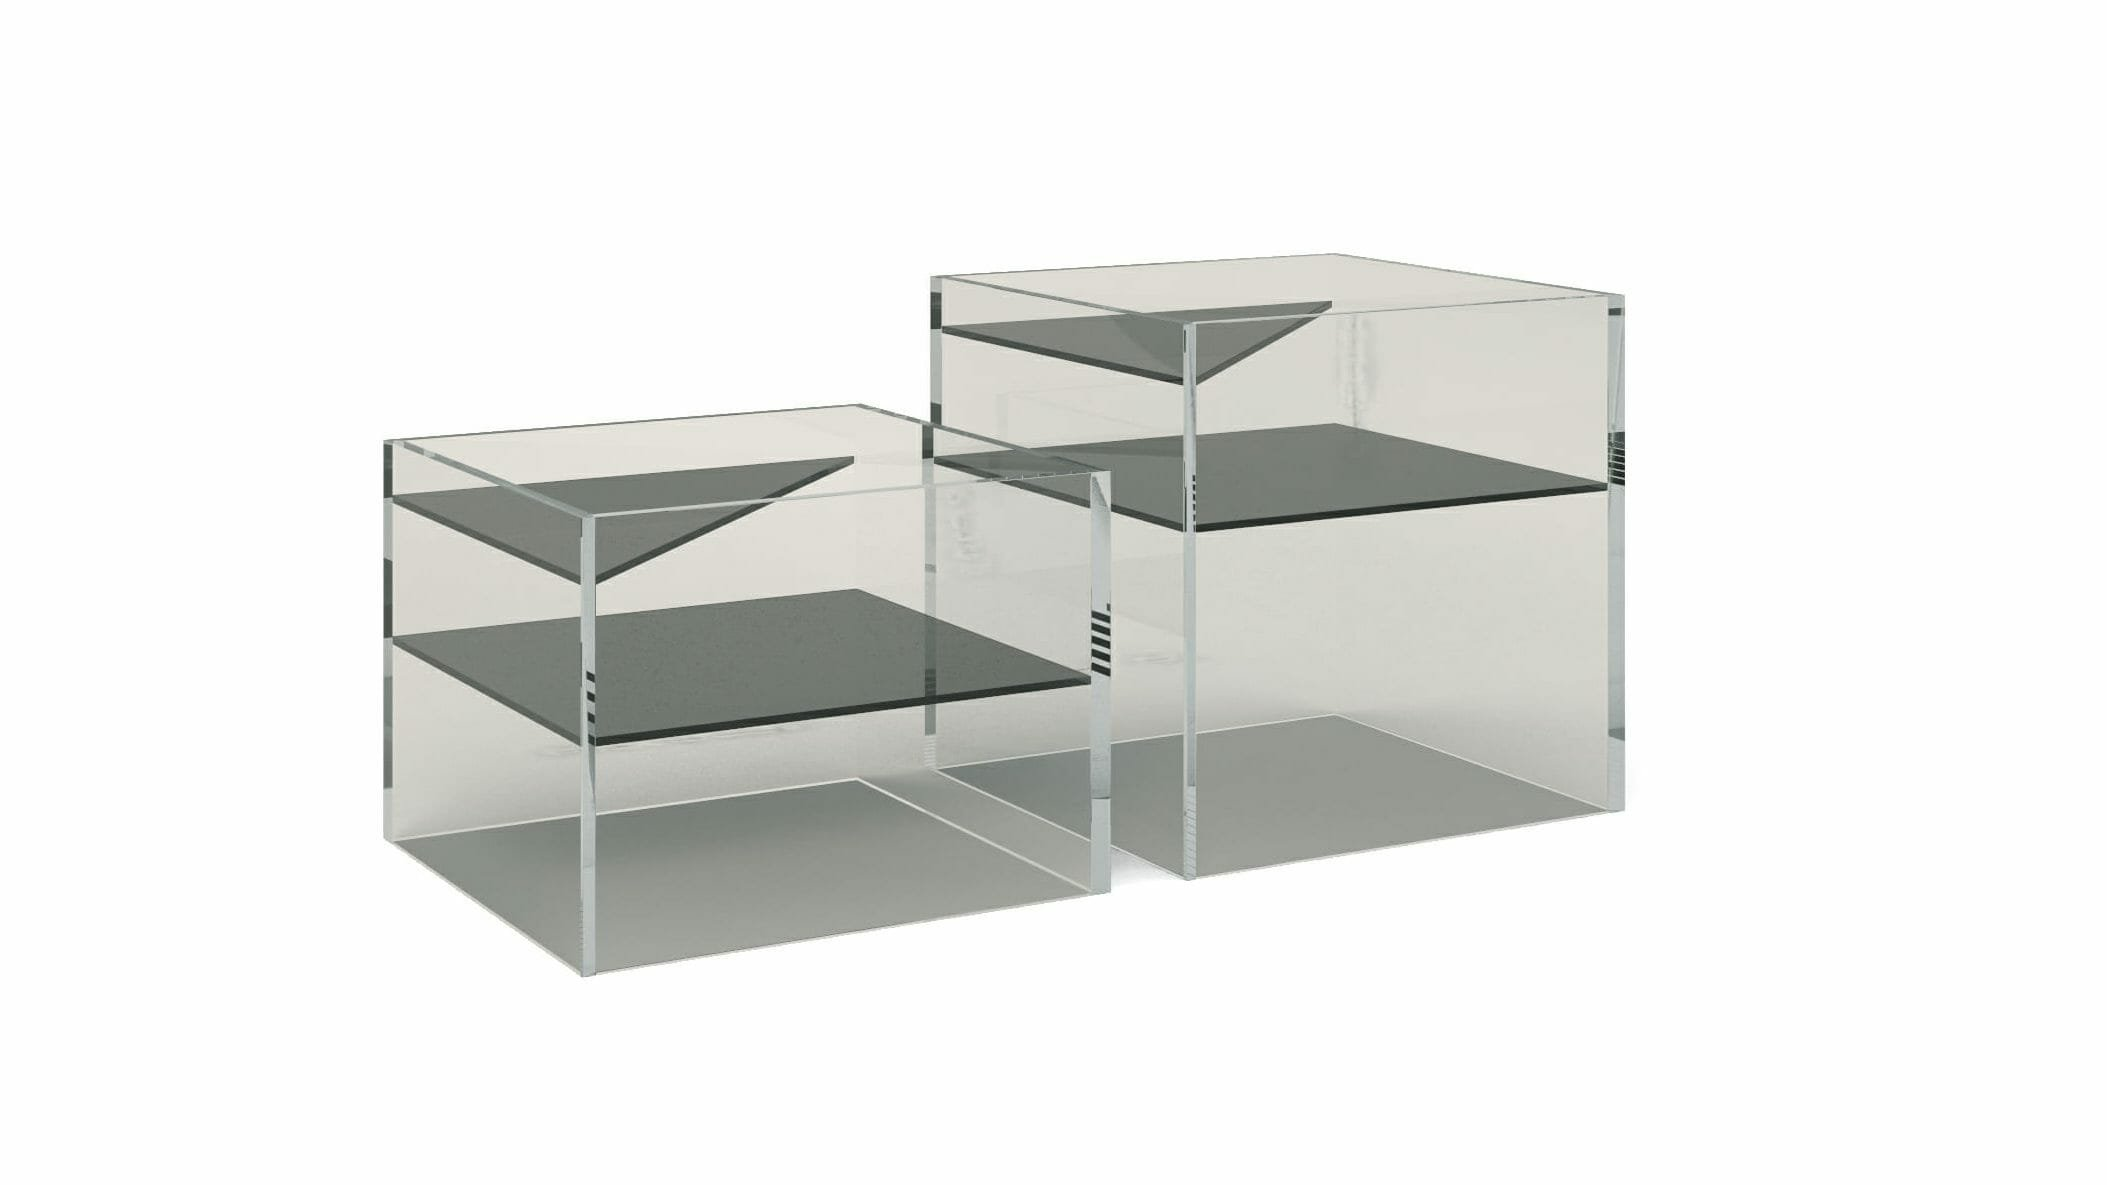 OONIKO high end glass furniture direction 2